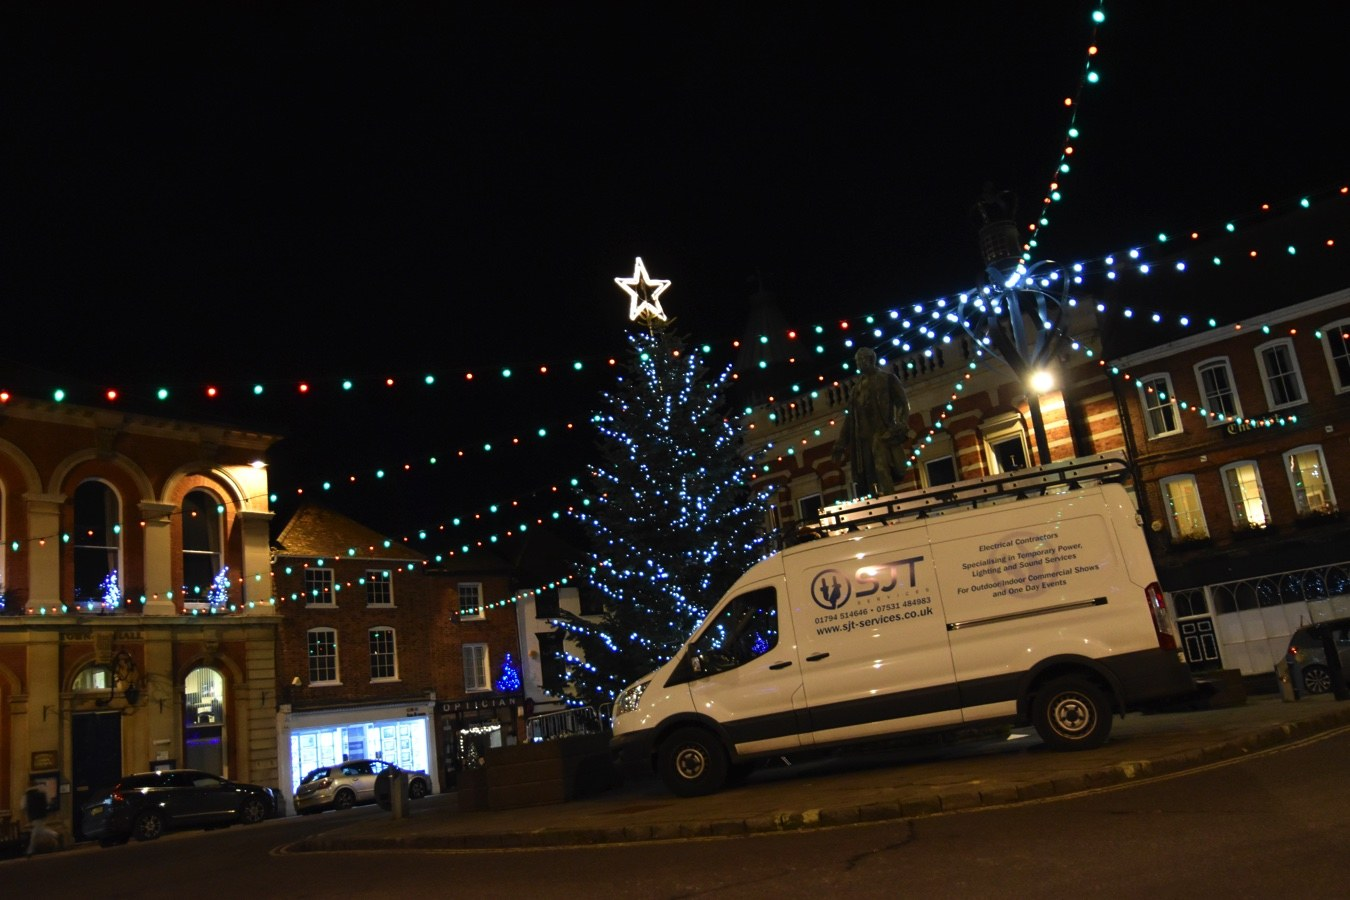 For Further Information About Maintaining And Installing Your Christmas  Lighting Scheme Or To Request A Quote Simply Call Our Friendly Team On  01794 514646.